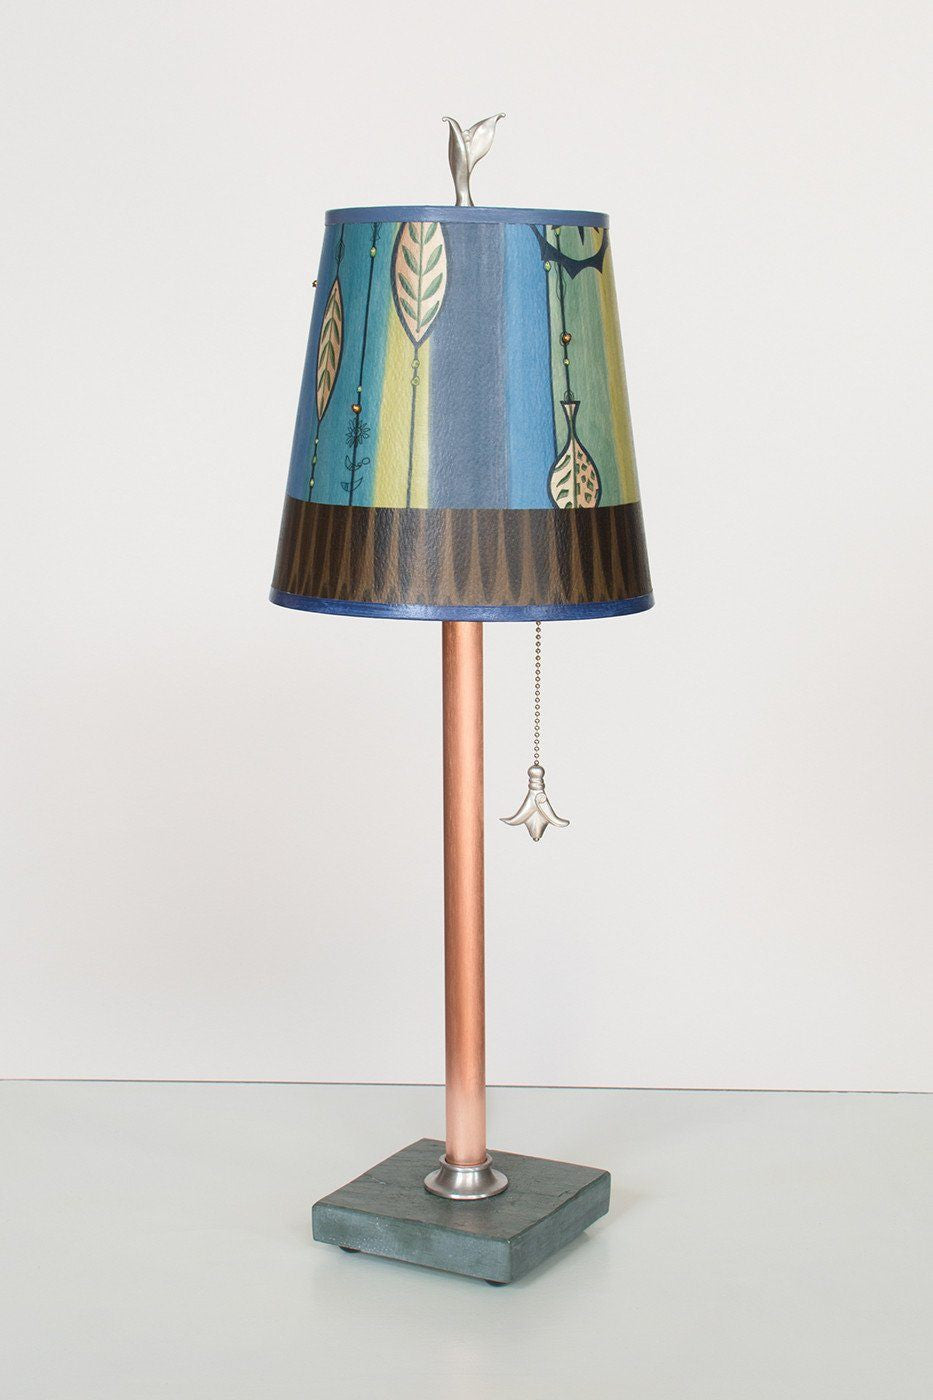 Copper Table Lamp on Vermont Slate Base with Small Drum Shade in Leaf Stripe Blues Lit